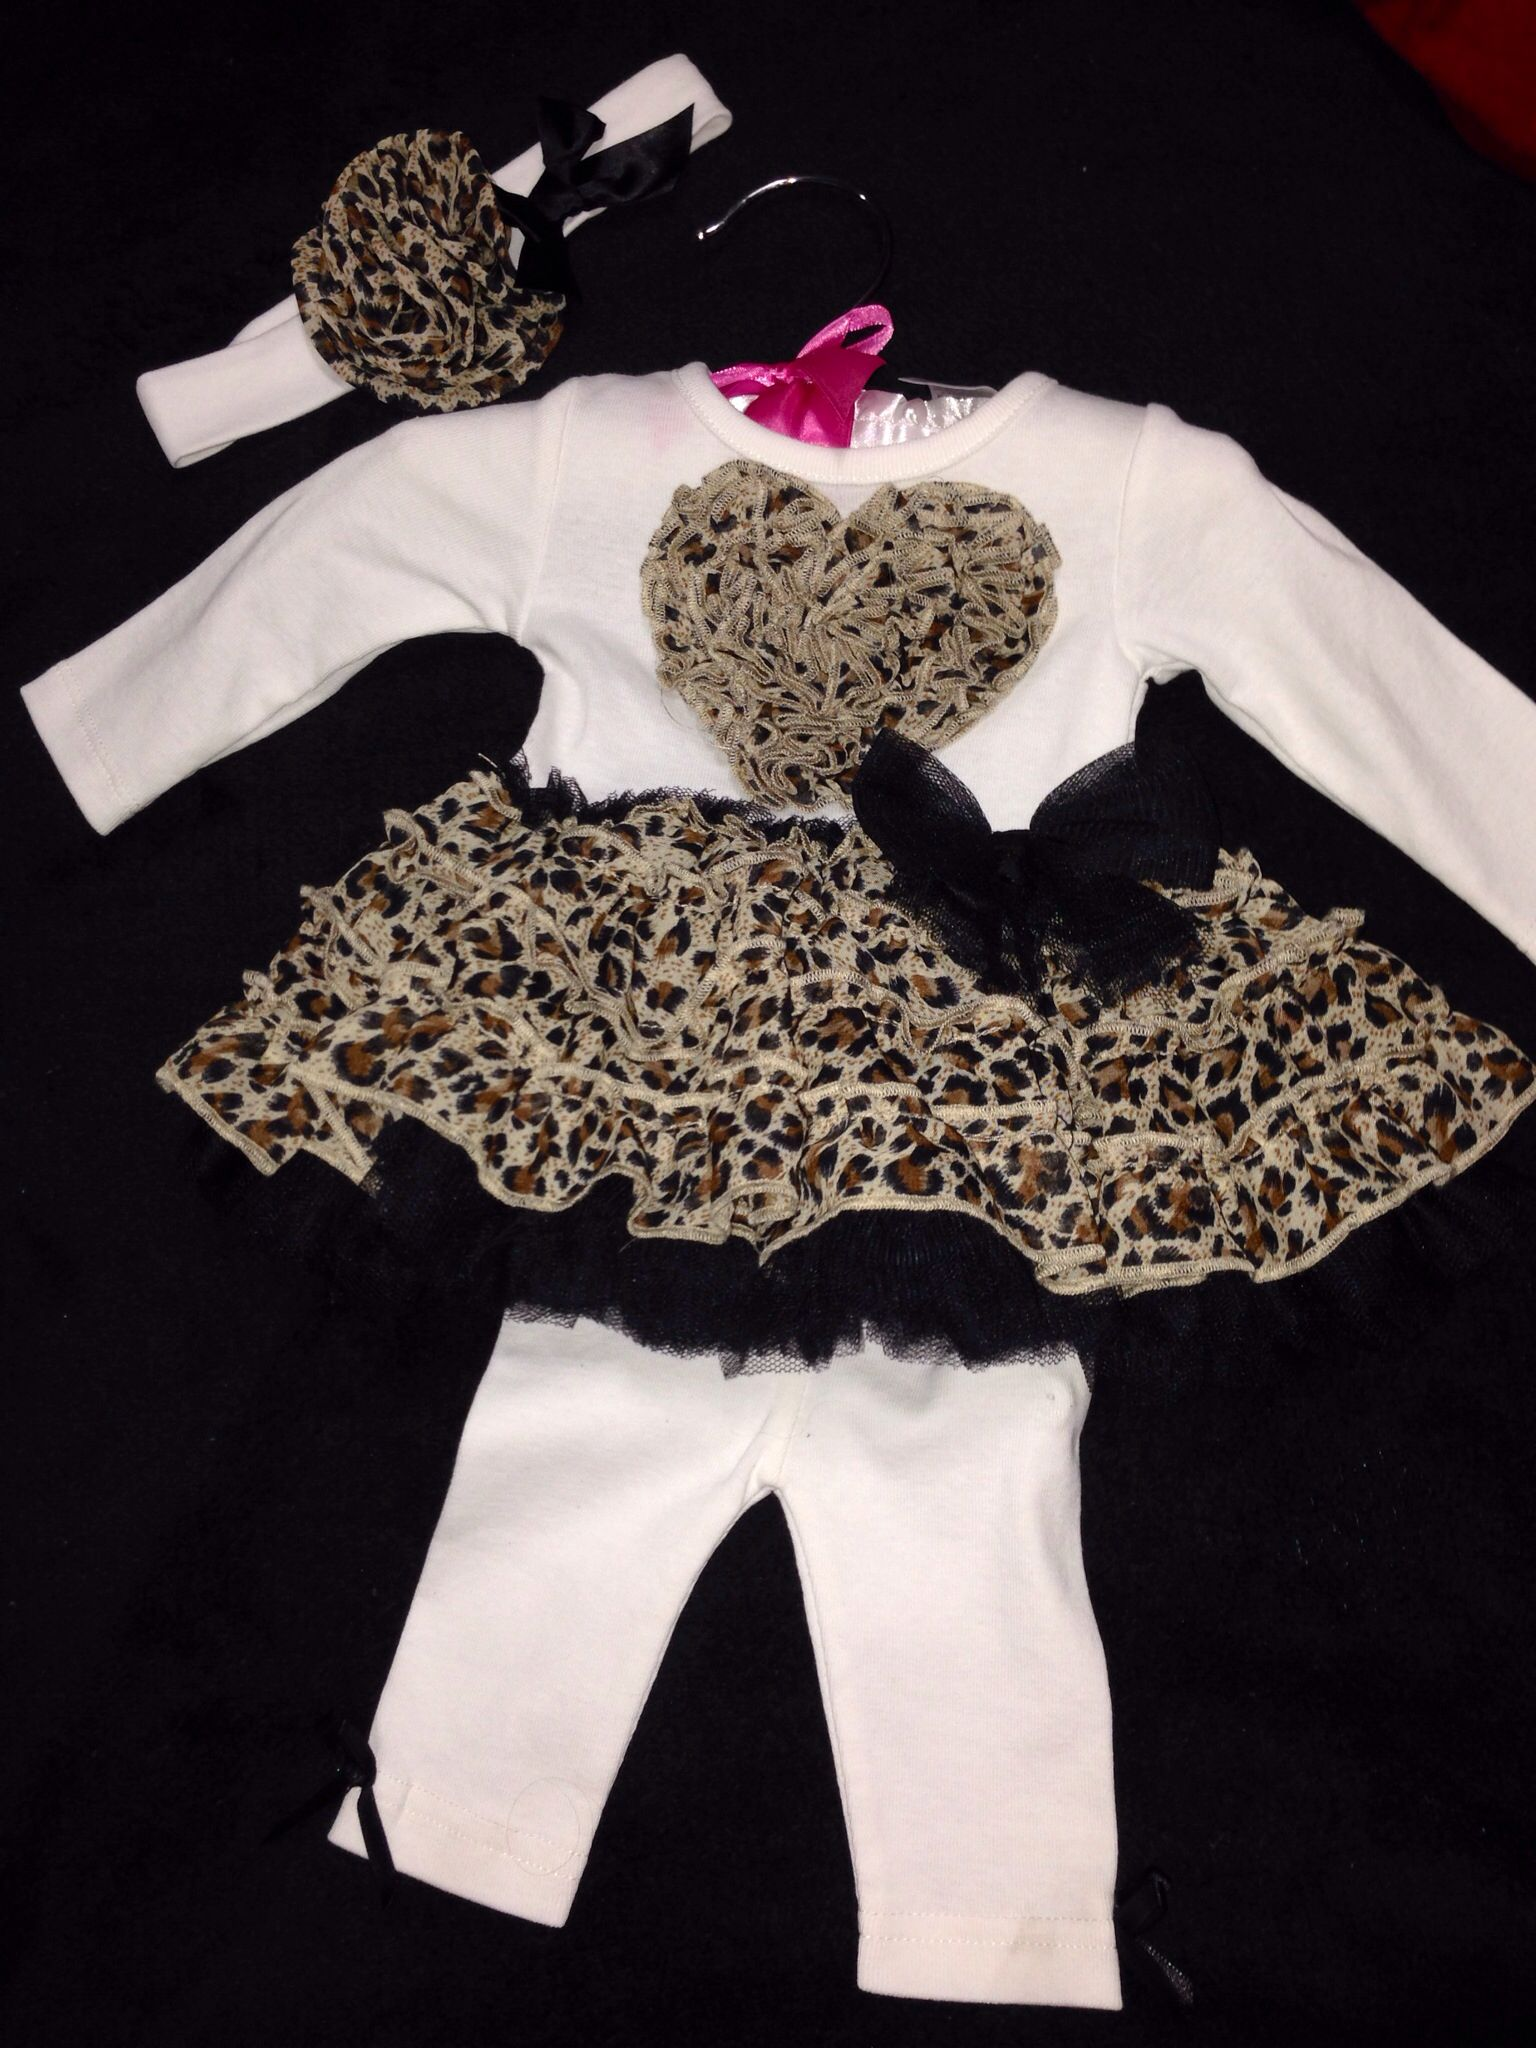 Babies R Us Baby Girl Clothes : babies, clothes, Babies, Newborn, Outfit, Boutique, Clothing,, Outfit,